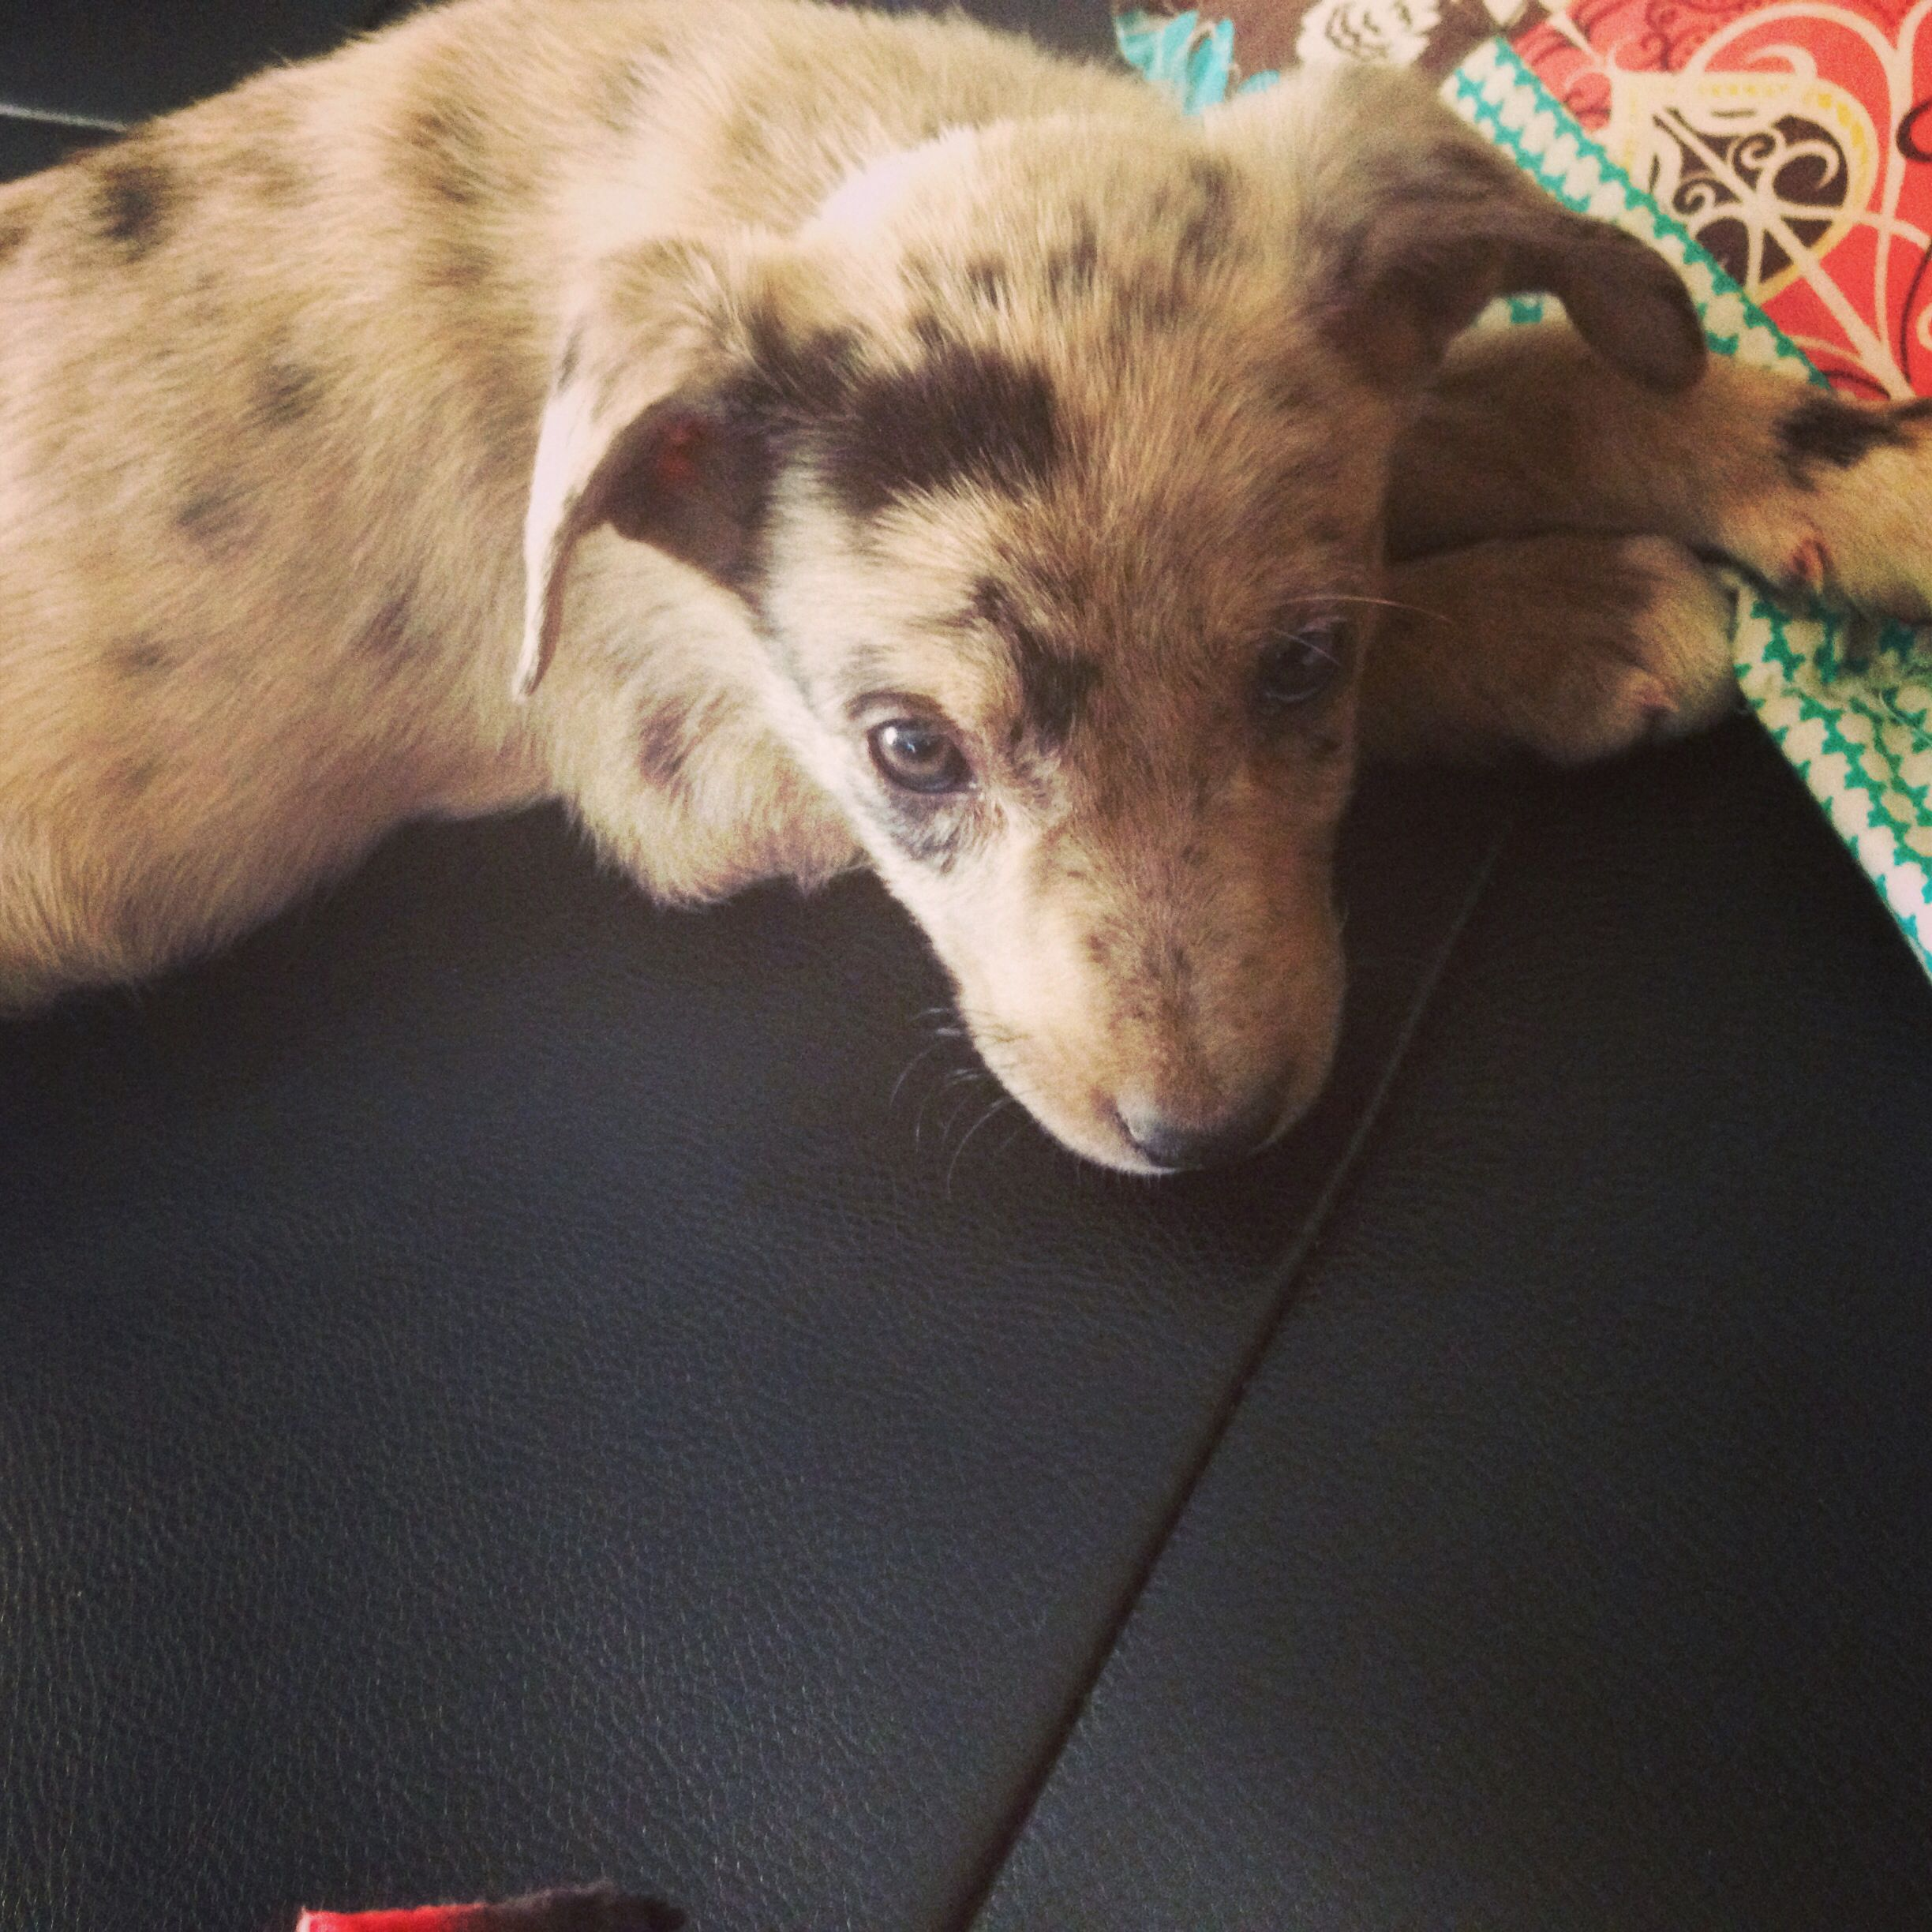 Hanging tree cow dogs for sale - Ranch Raised Registered Hangin Tree Cowdog Pups For Sale For More Information Click On The Image Or See Ad 31635 On Www Ranchworldads Com Pinterest